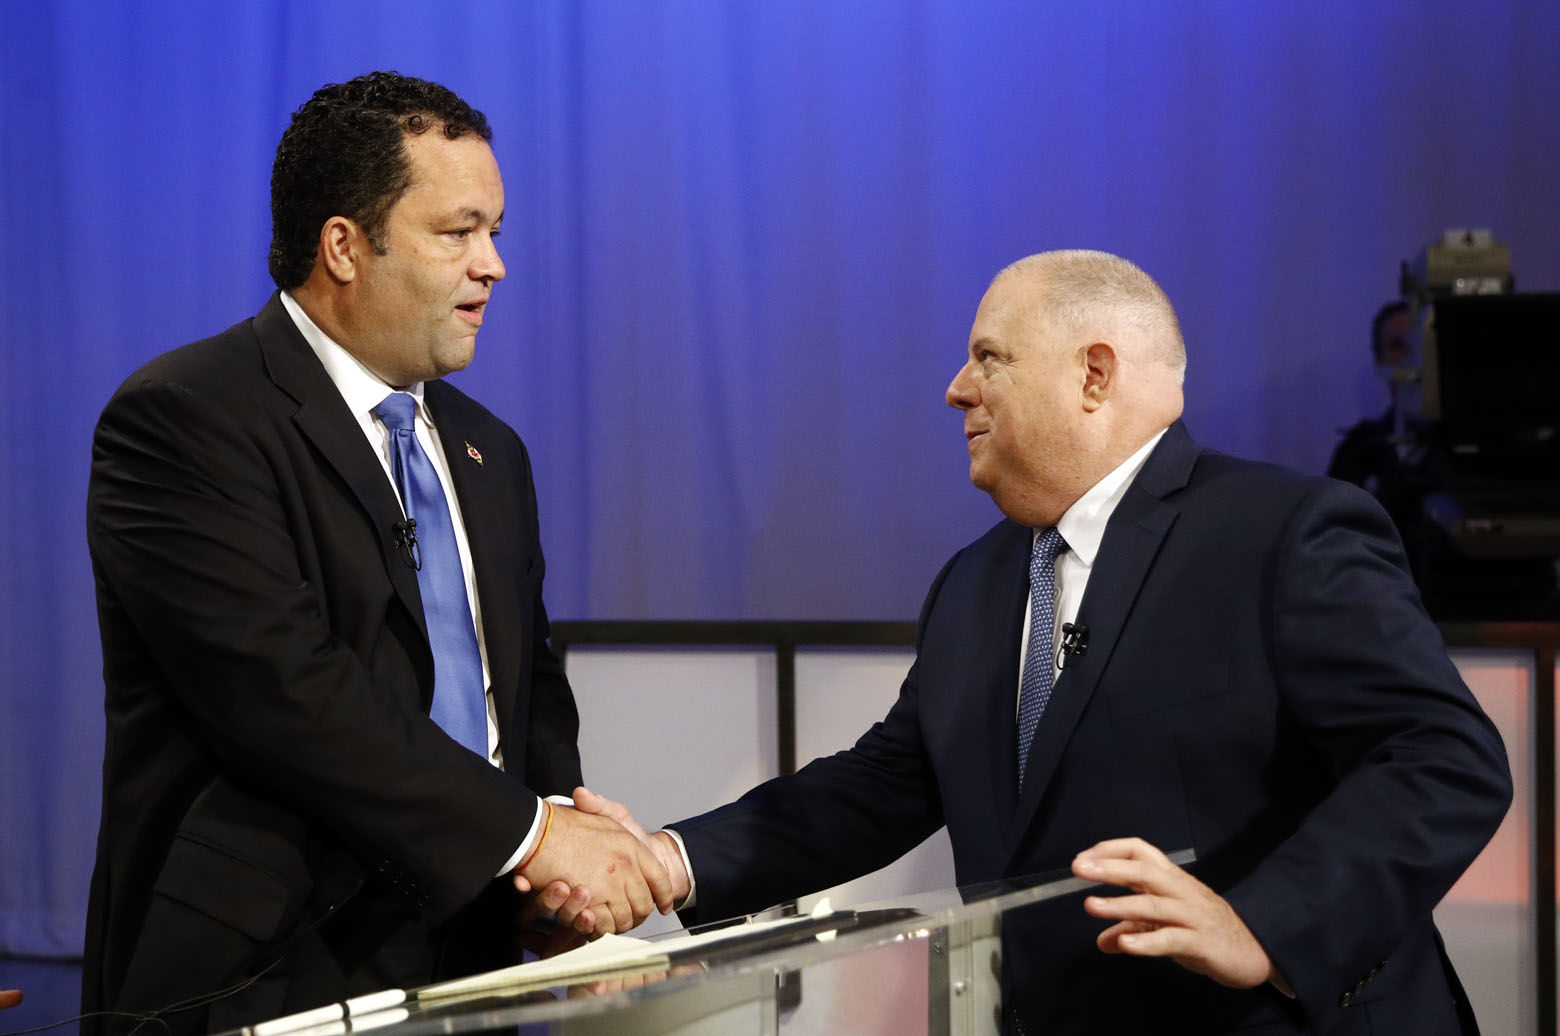 Maryland Democratic gubernatorial candidate Ben Jealous, left, and Republican candidate, Maryland Gov. Larry Hogan, shake hands before participating in a debate Monday, Sept. 24, 2018, at Maryland Public Television's studios in Owings Mills, Md. (AP Photo/Patrick Semansky)